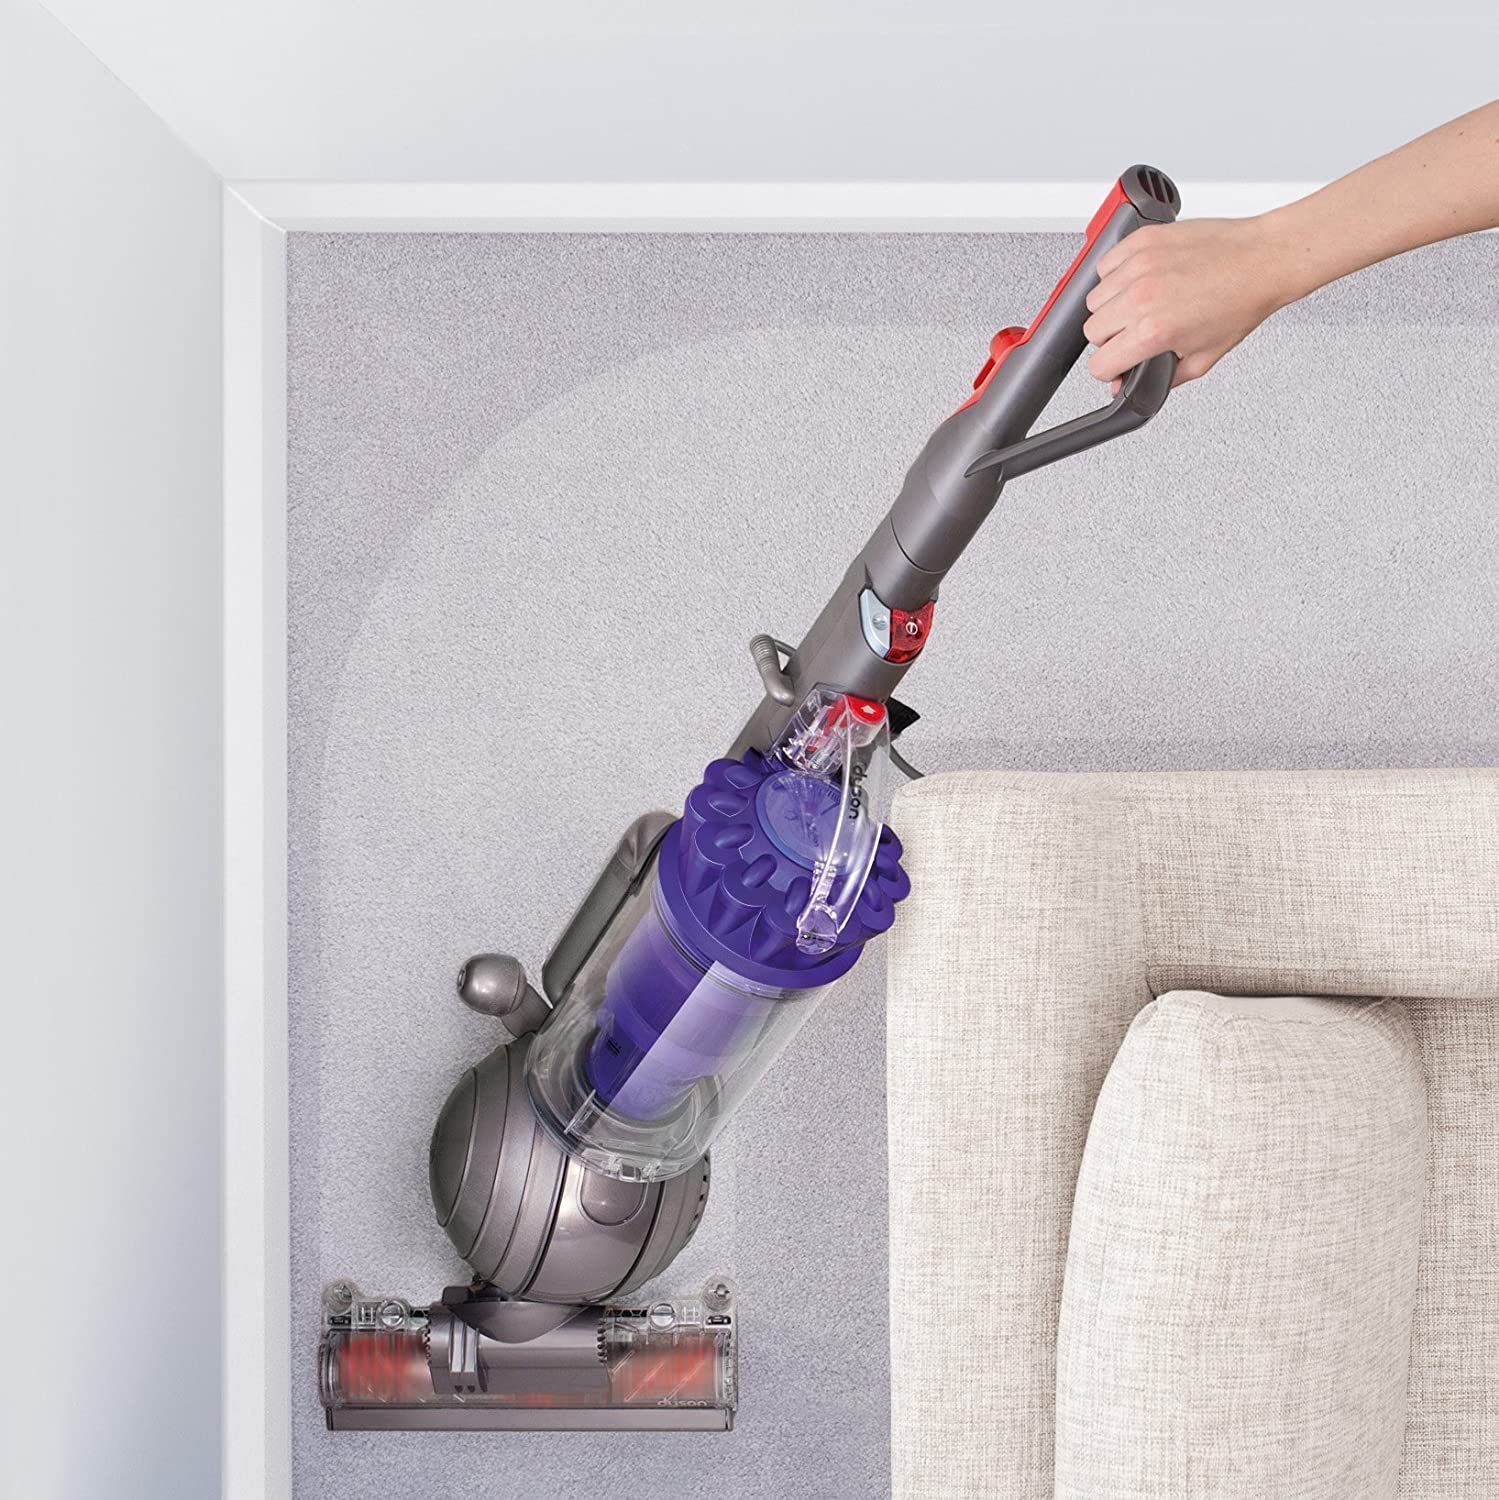 Amazon.com - Dyson DC41 Animal Bagless Vacuum Cleaner - Household Upright  Vacuums